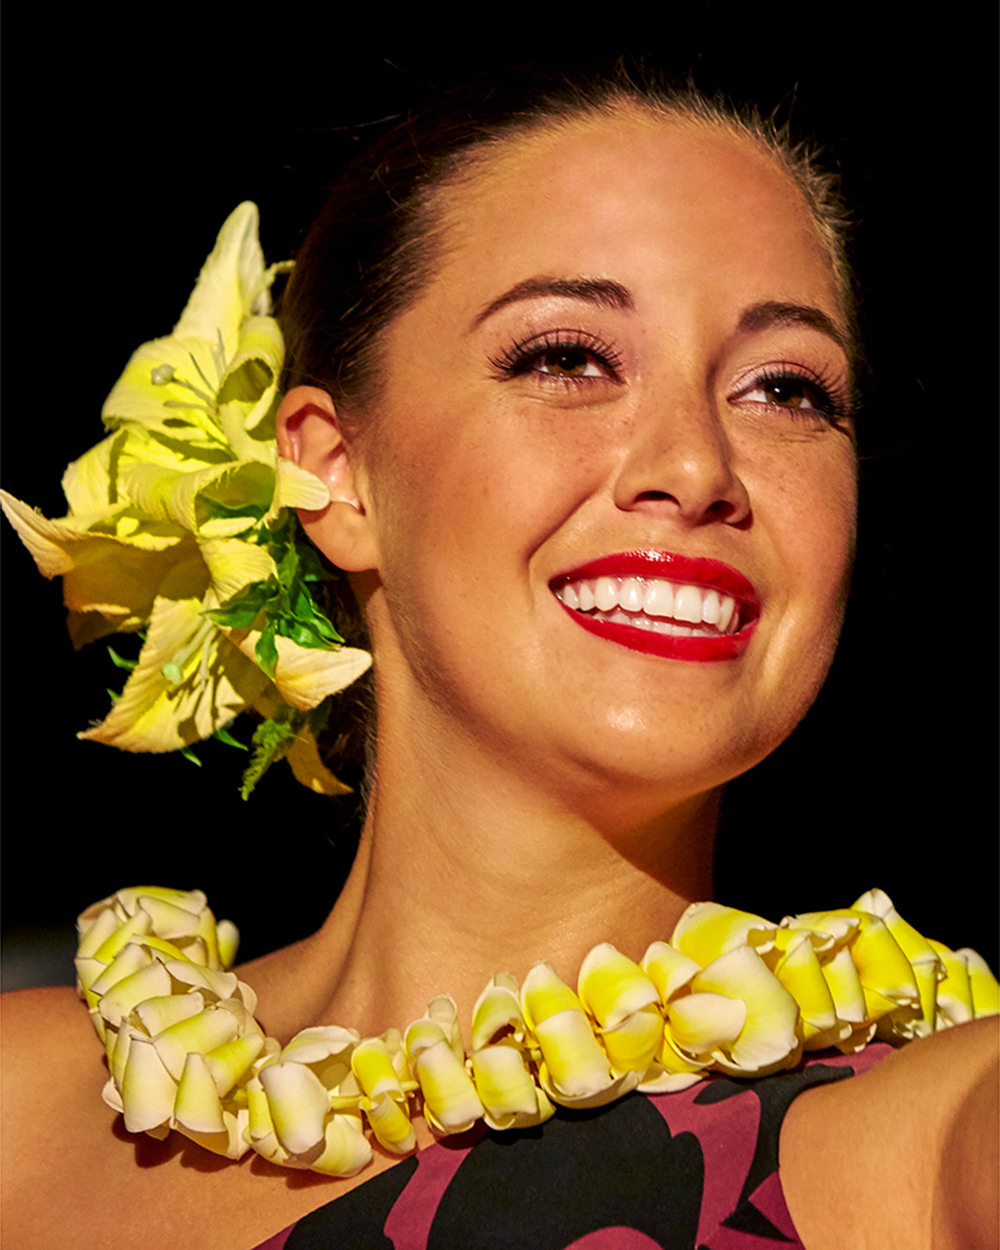 MISS HAWAII HULA PERFORMANCE AT HOUSE WITHOUT A KEY